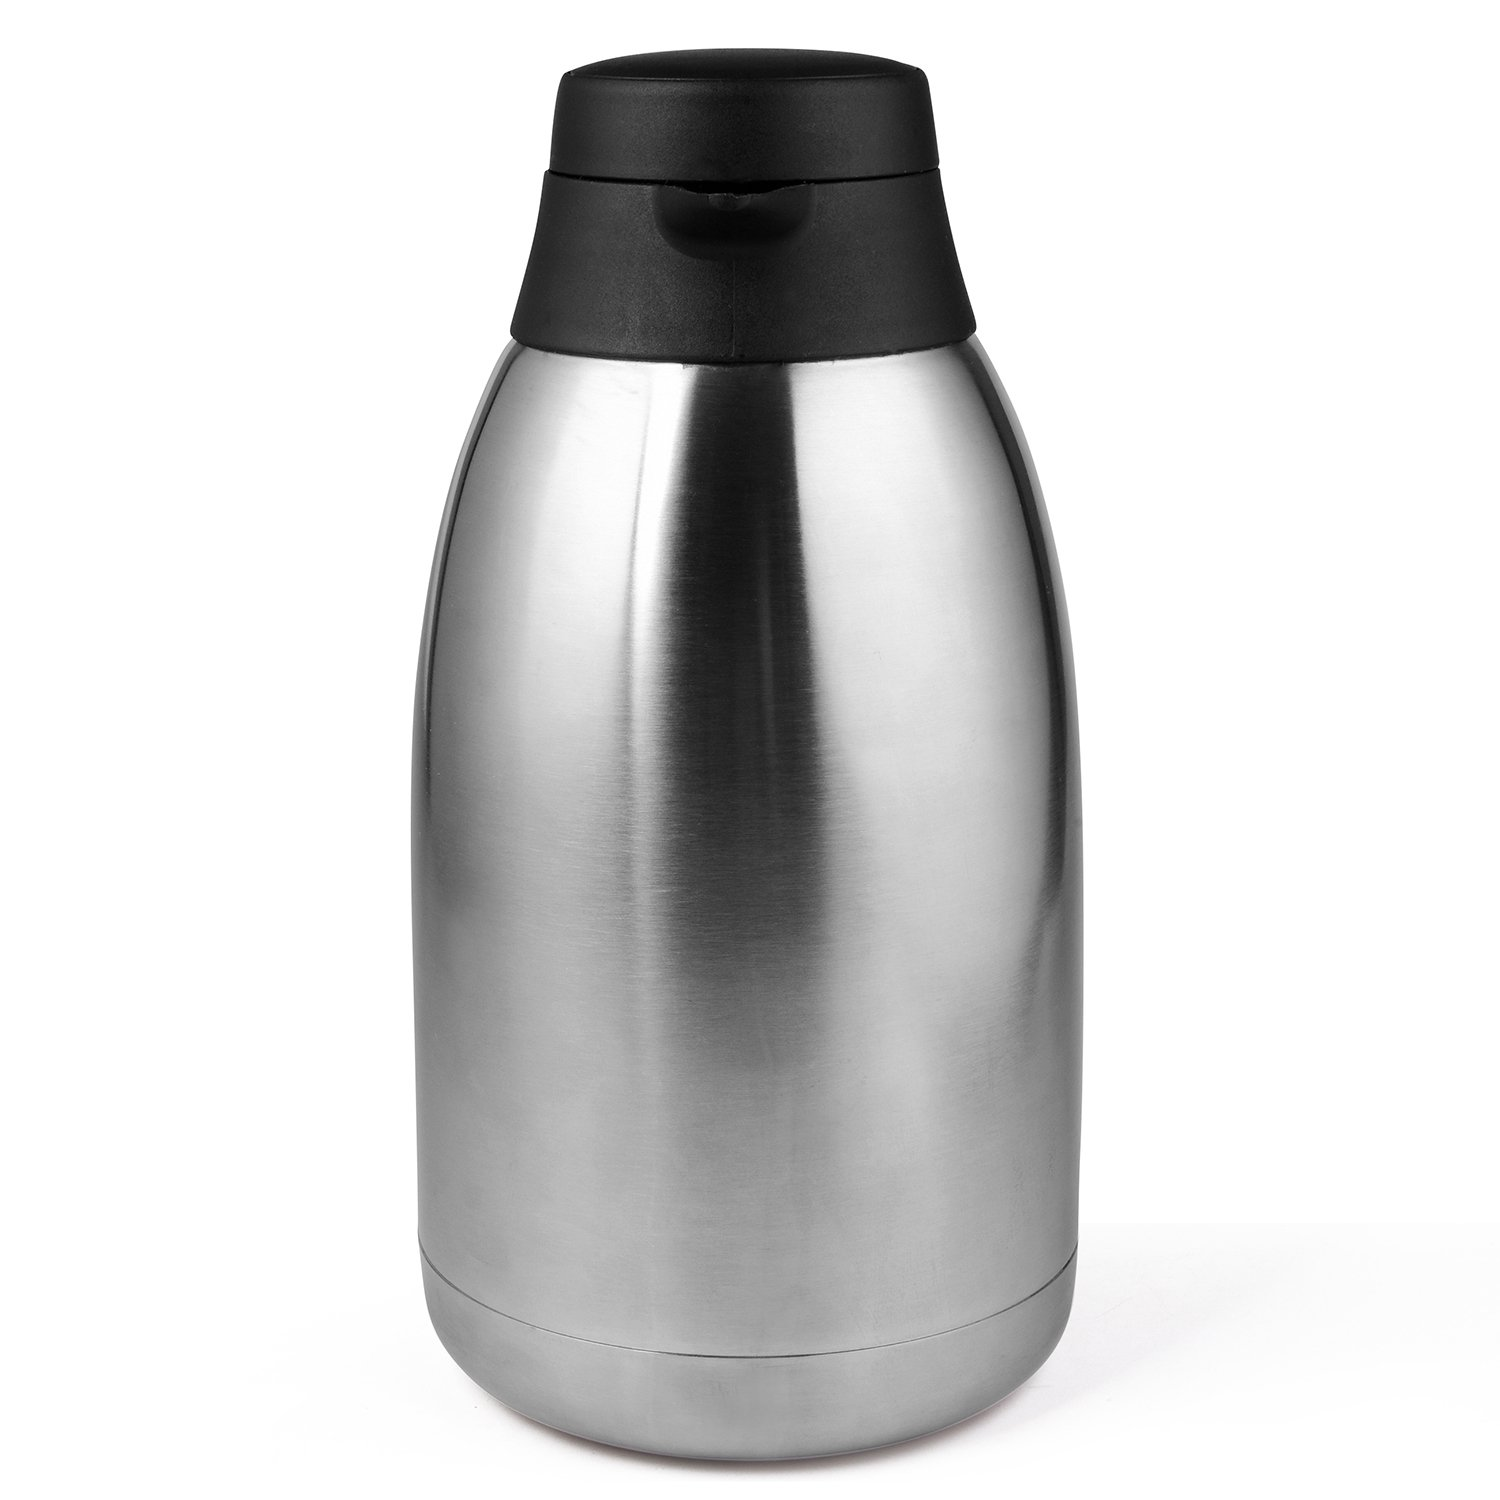 68 Oz Stainless Steel Thermal Coffee Carafe/Double Walled Vacuum Thermos / 12 Hour Heat Retention / 2 Litre by Cresimo by Cresimo (Image #5)